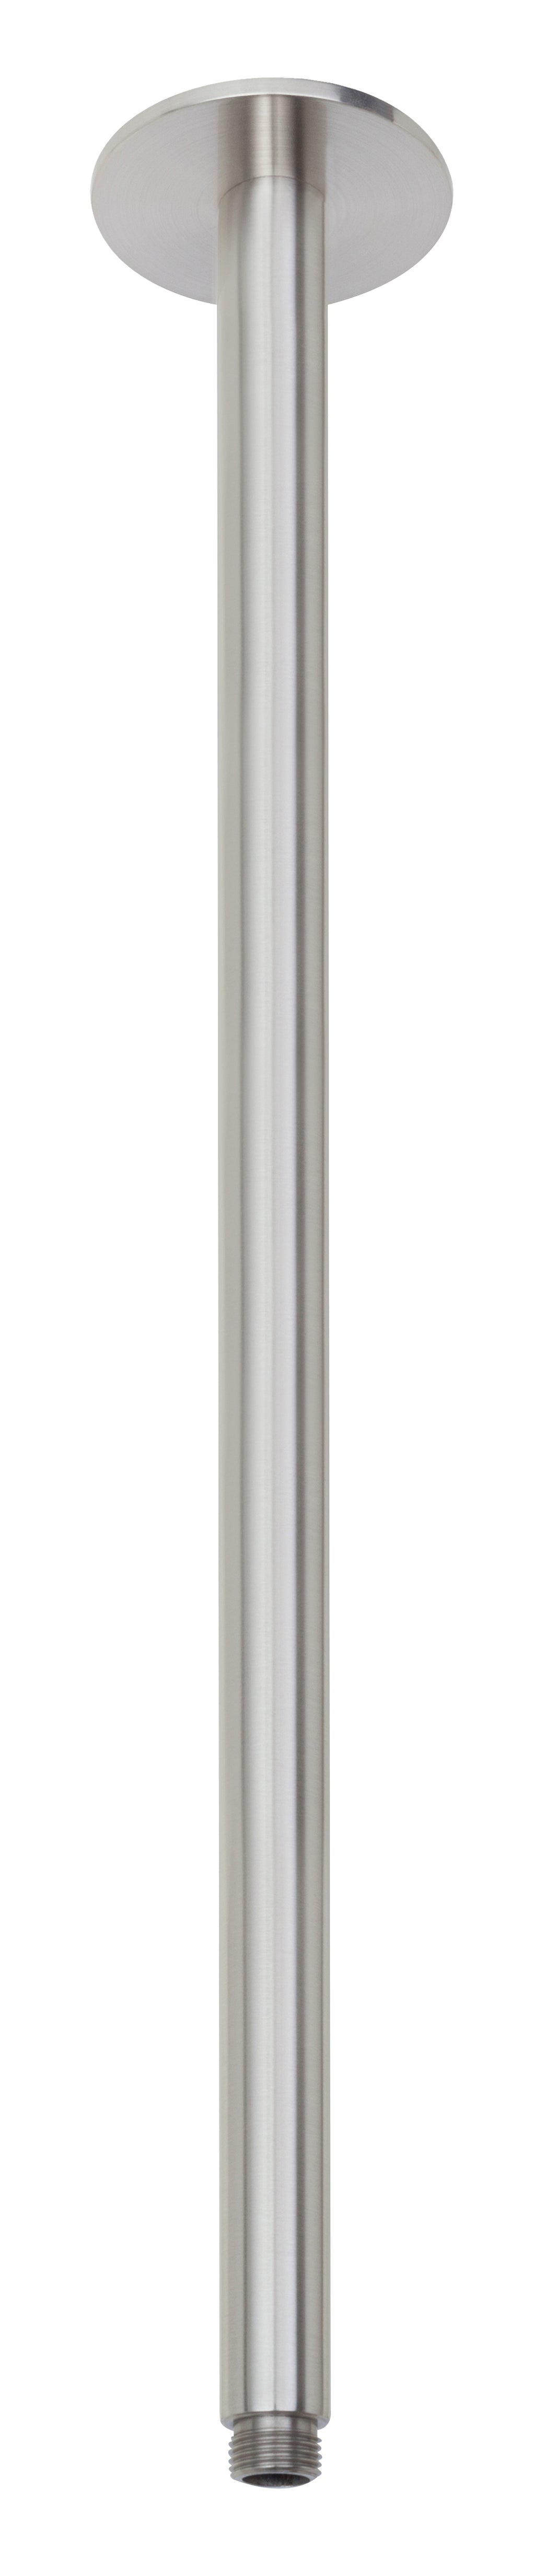 Vivid Ceiling Arm Only 450mm (Brushed Nickel)